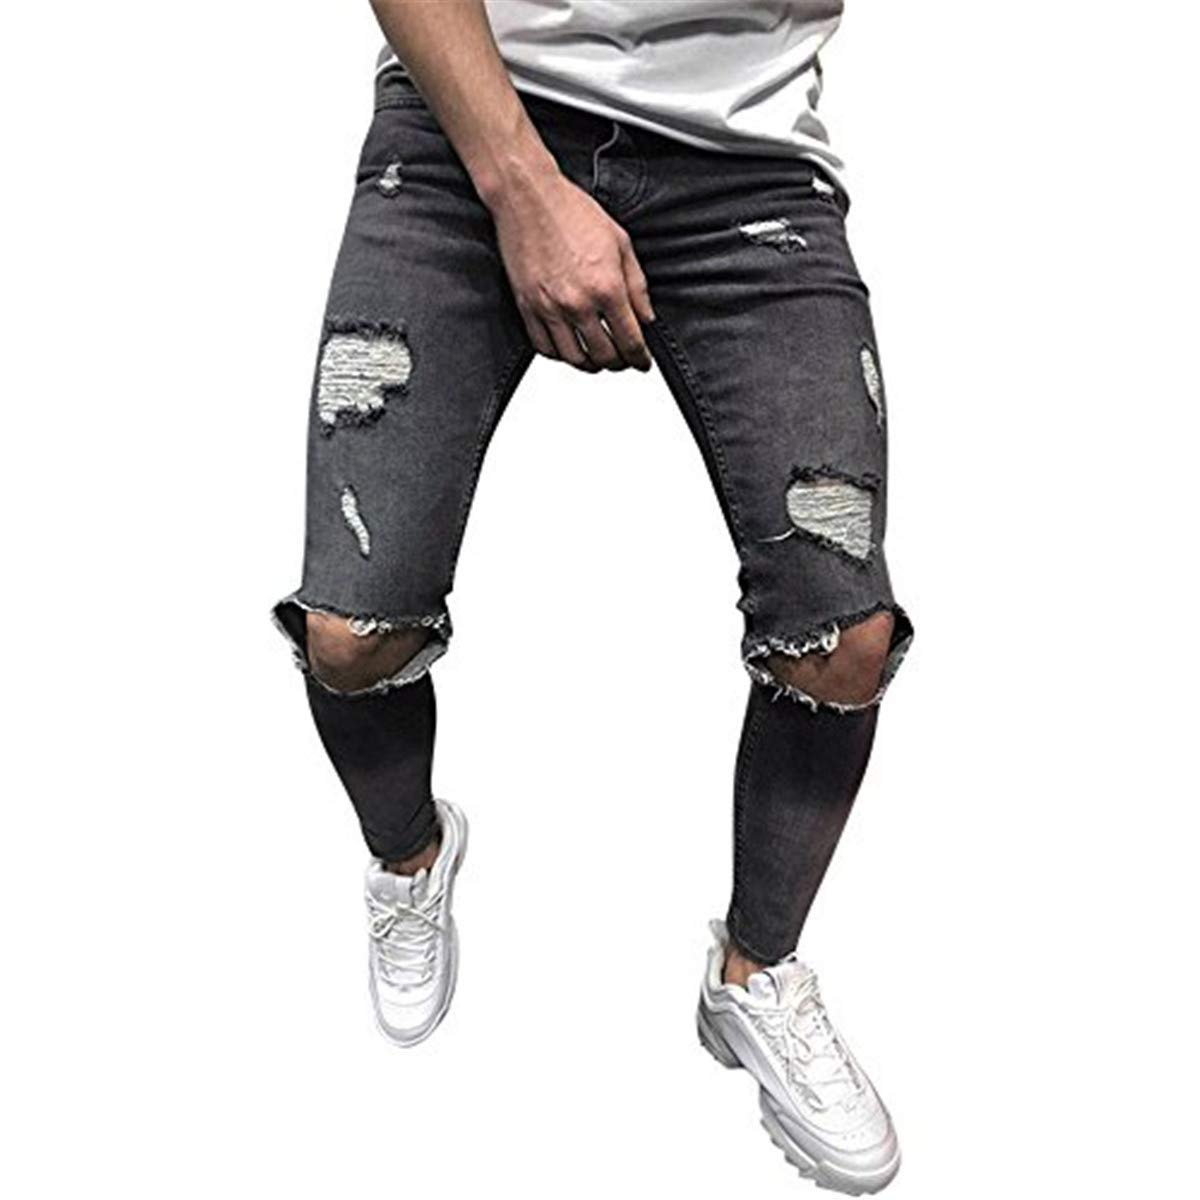 Amacok Mens Jeans Pants Fashion Skinny Stretch Denim Pants Distressed Ripped Freyed Slim Fit Jeans Trousers